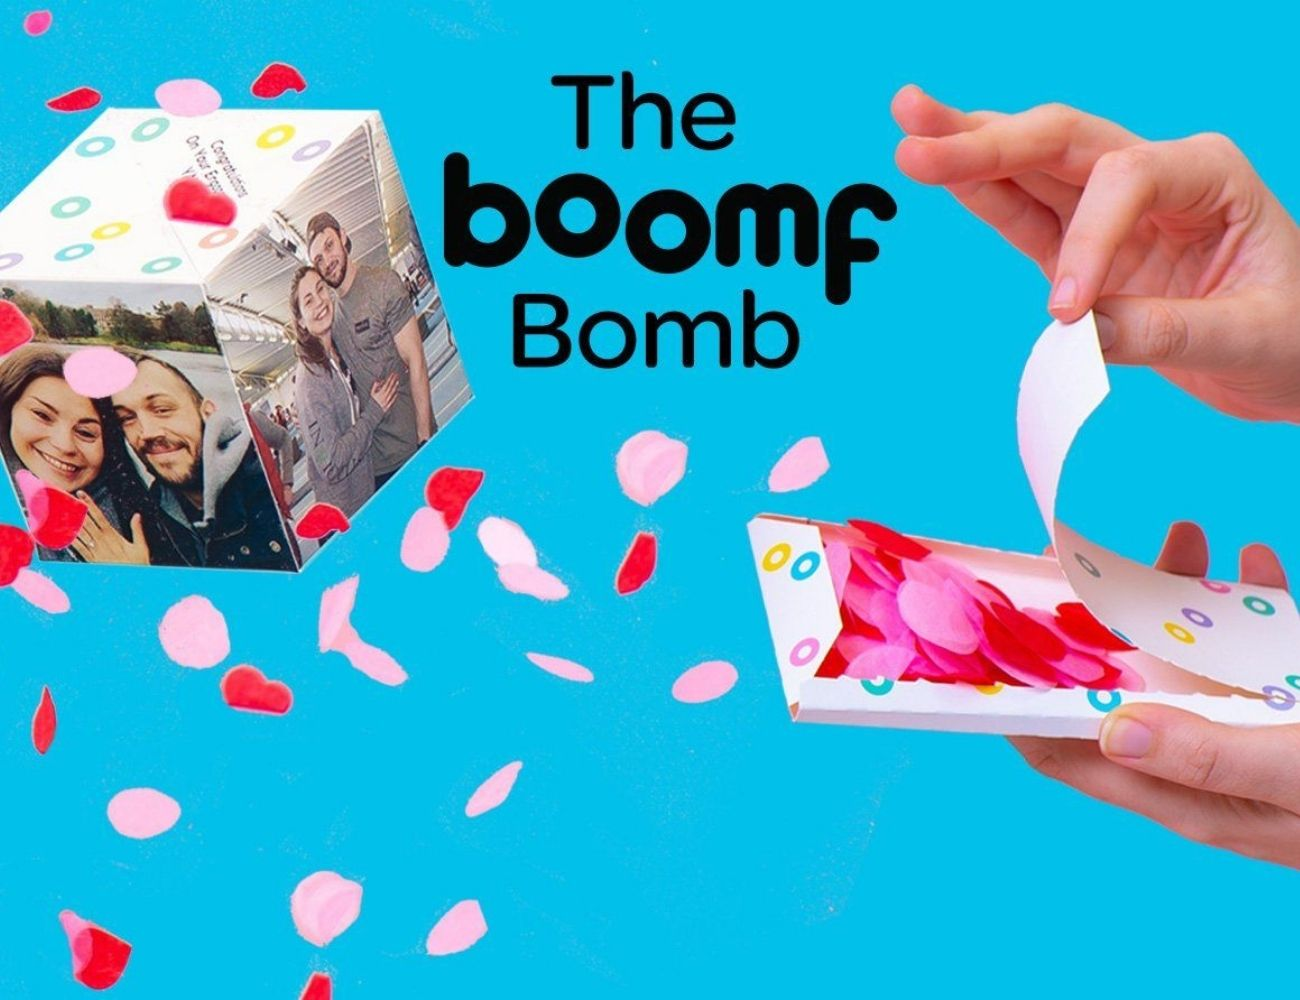 How Boomf Went from Novelty Gift to Shock Value Cards